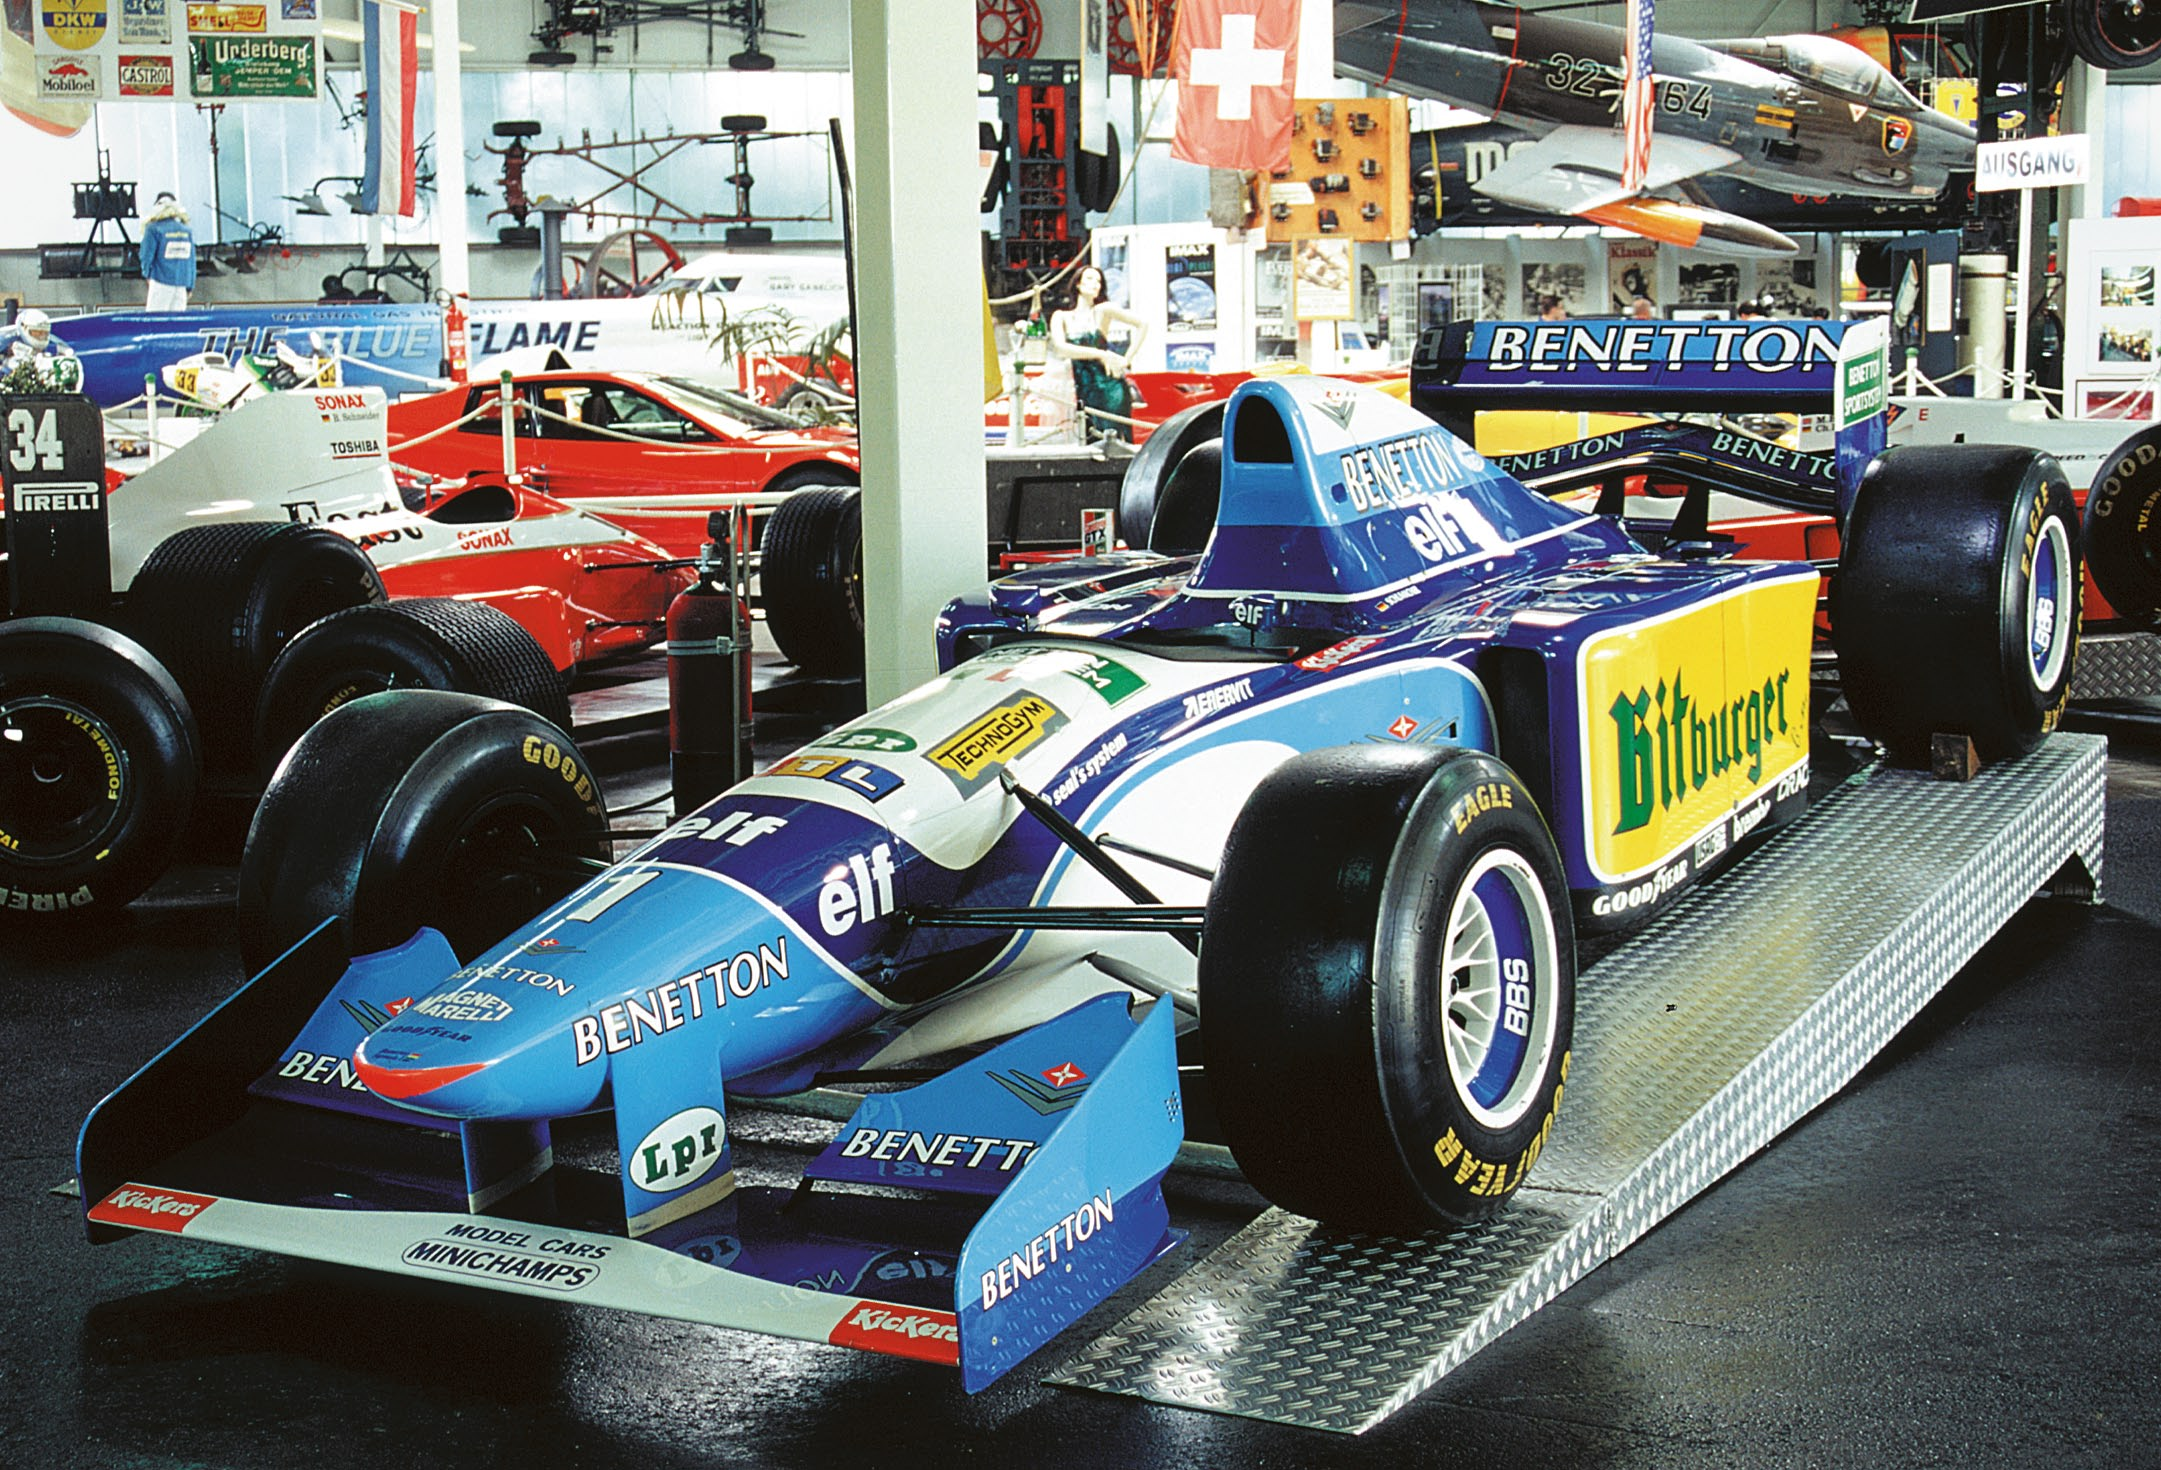 benetton renault b195 technik museum sinsheim. Black Bedroom Furniture Sets. Home Design Ideas